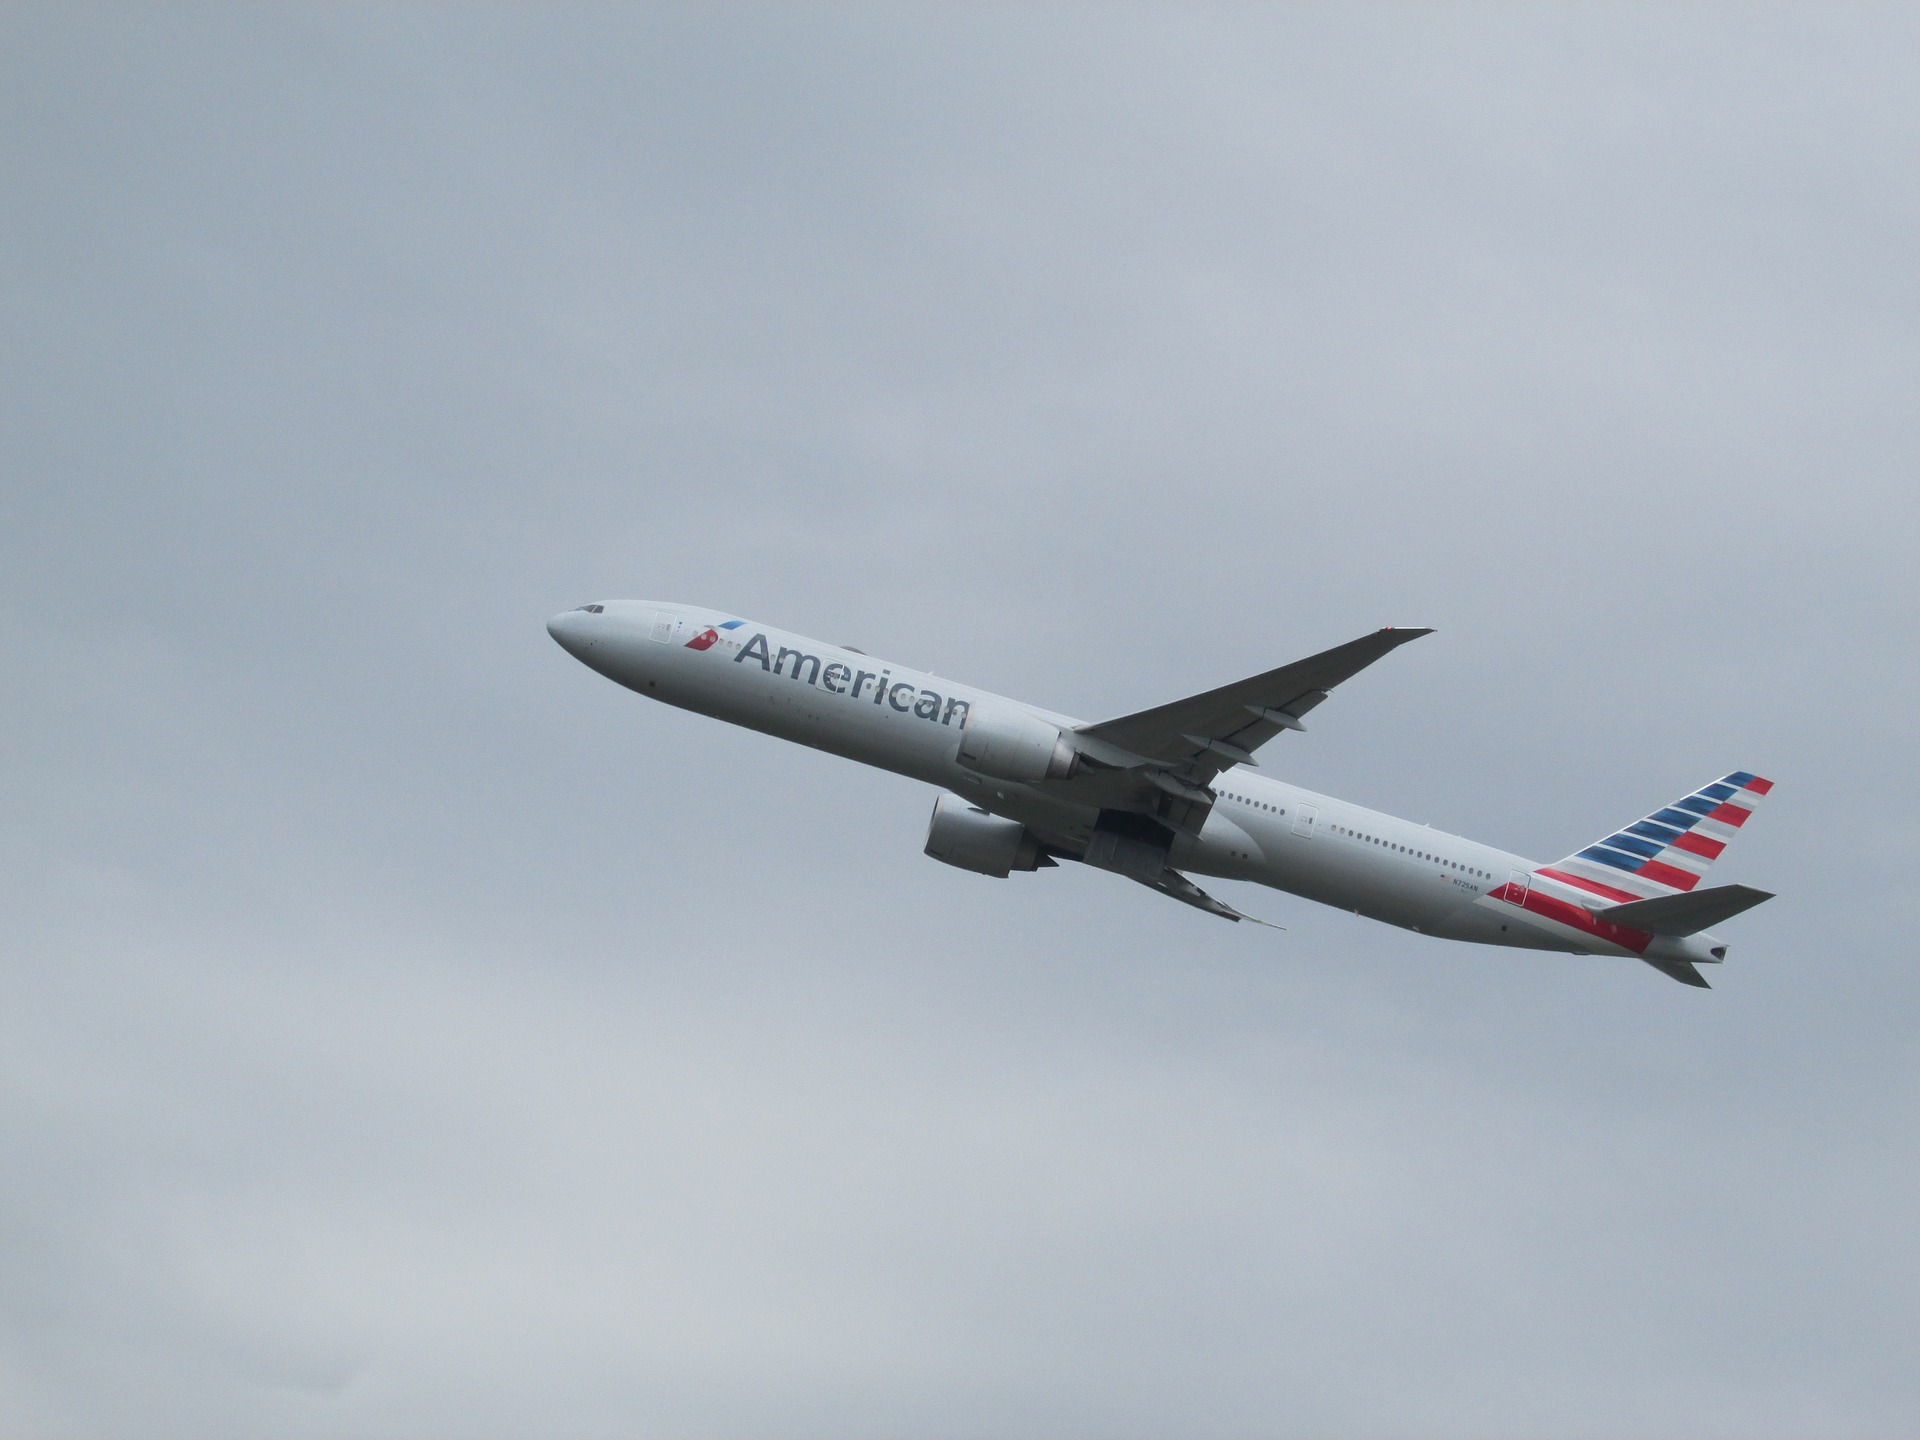 American Airlines, a member of oneworld